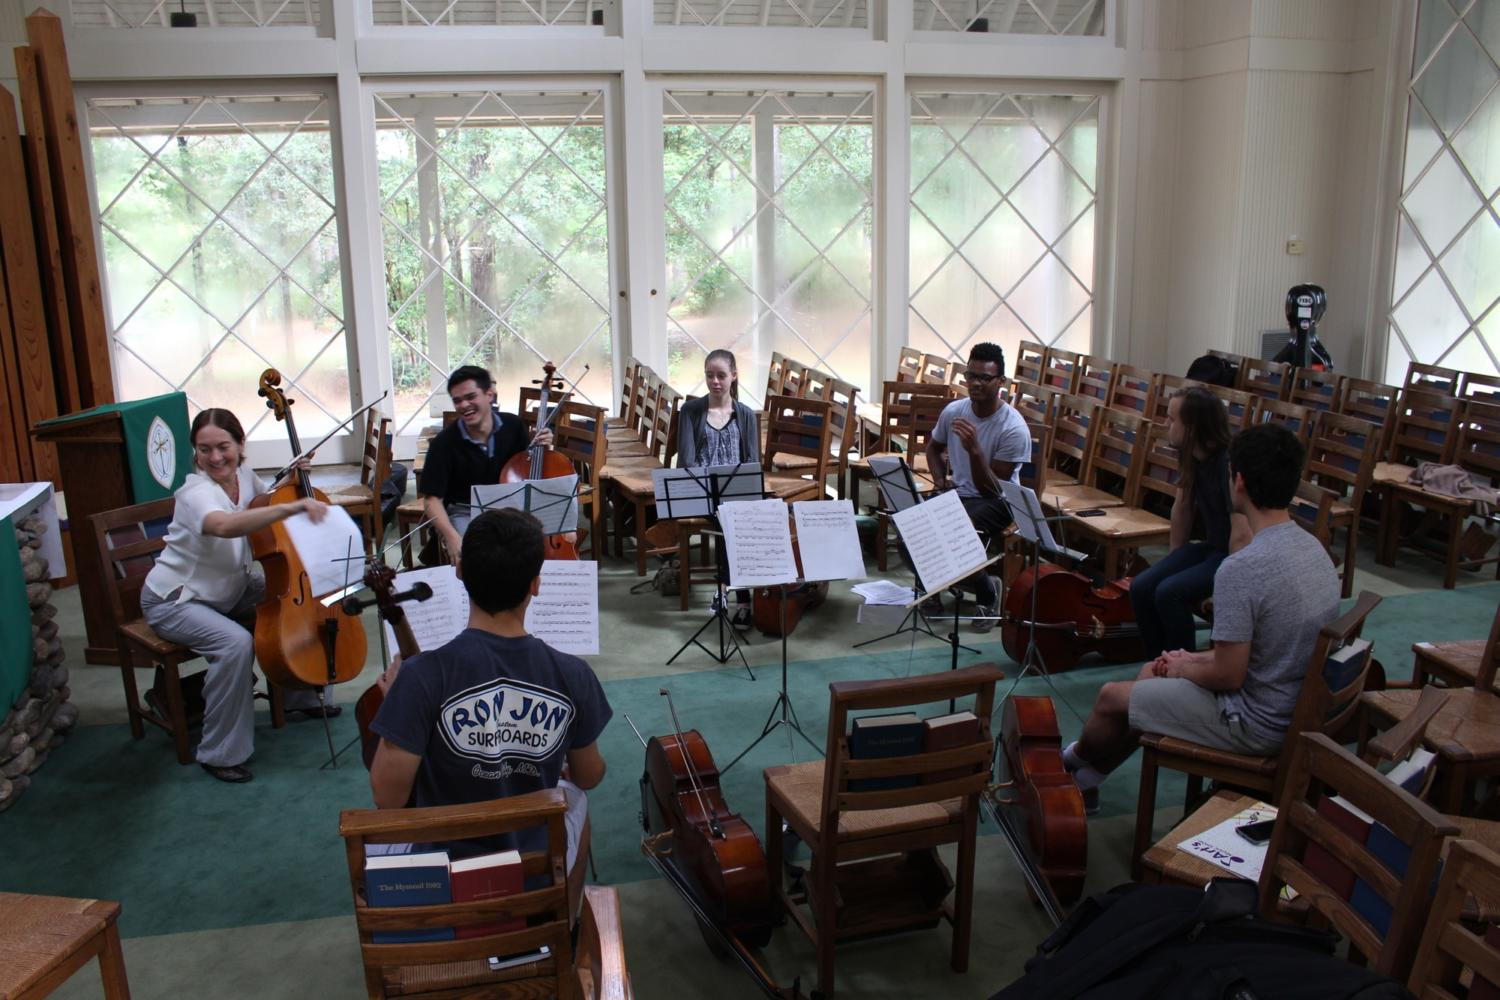 Loyola cello students rehearse with Tanya Anisimova on weekend retreat